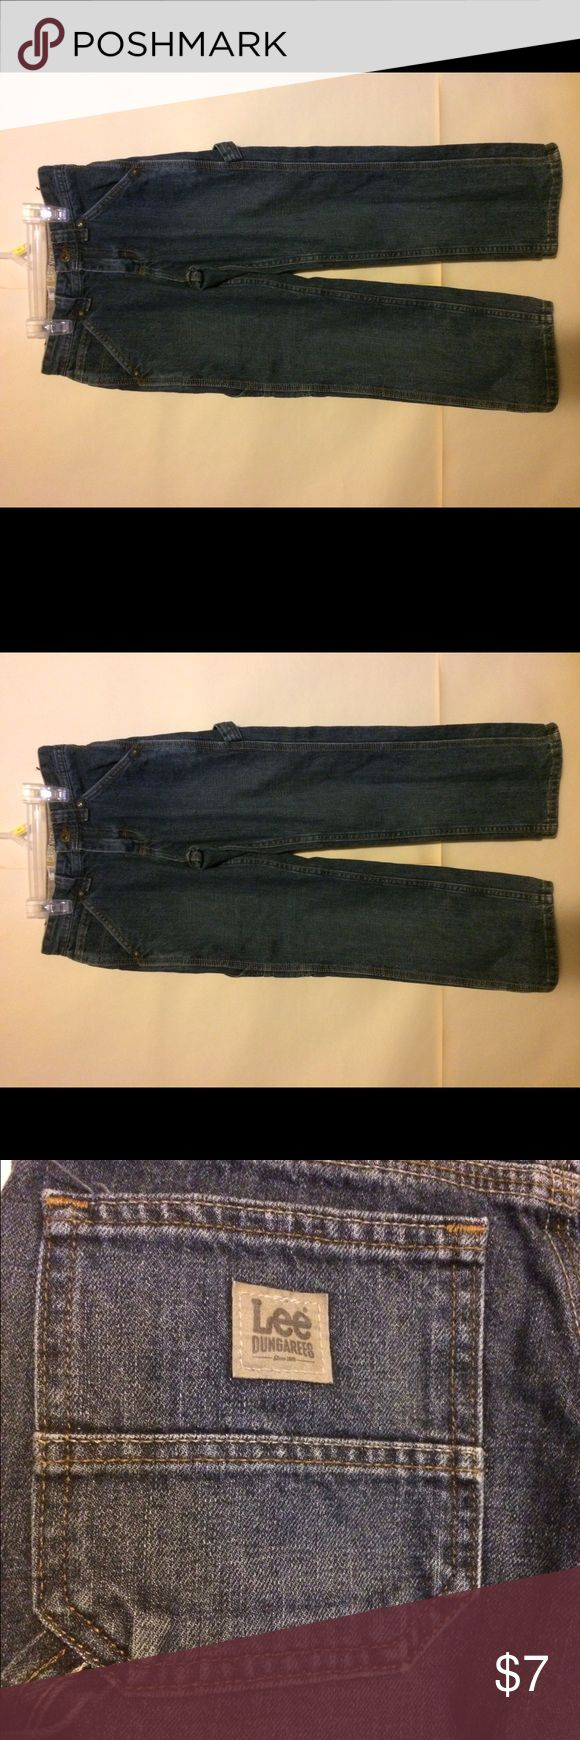 Lee Dungaree Carpenter Jeans Lee Dungaree Carpenter Jeans in great condition. Size 10 with an adjustable waist. Lee Bottoms Jeans